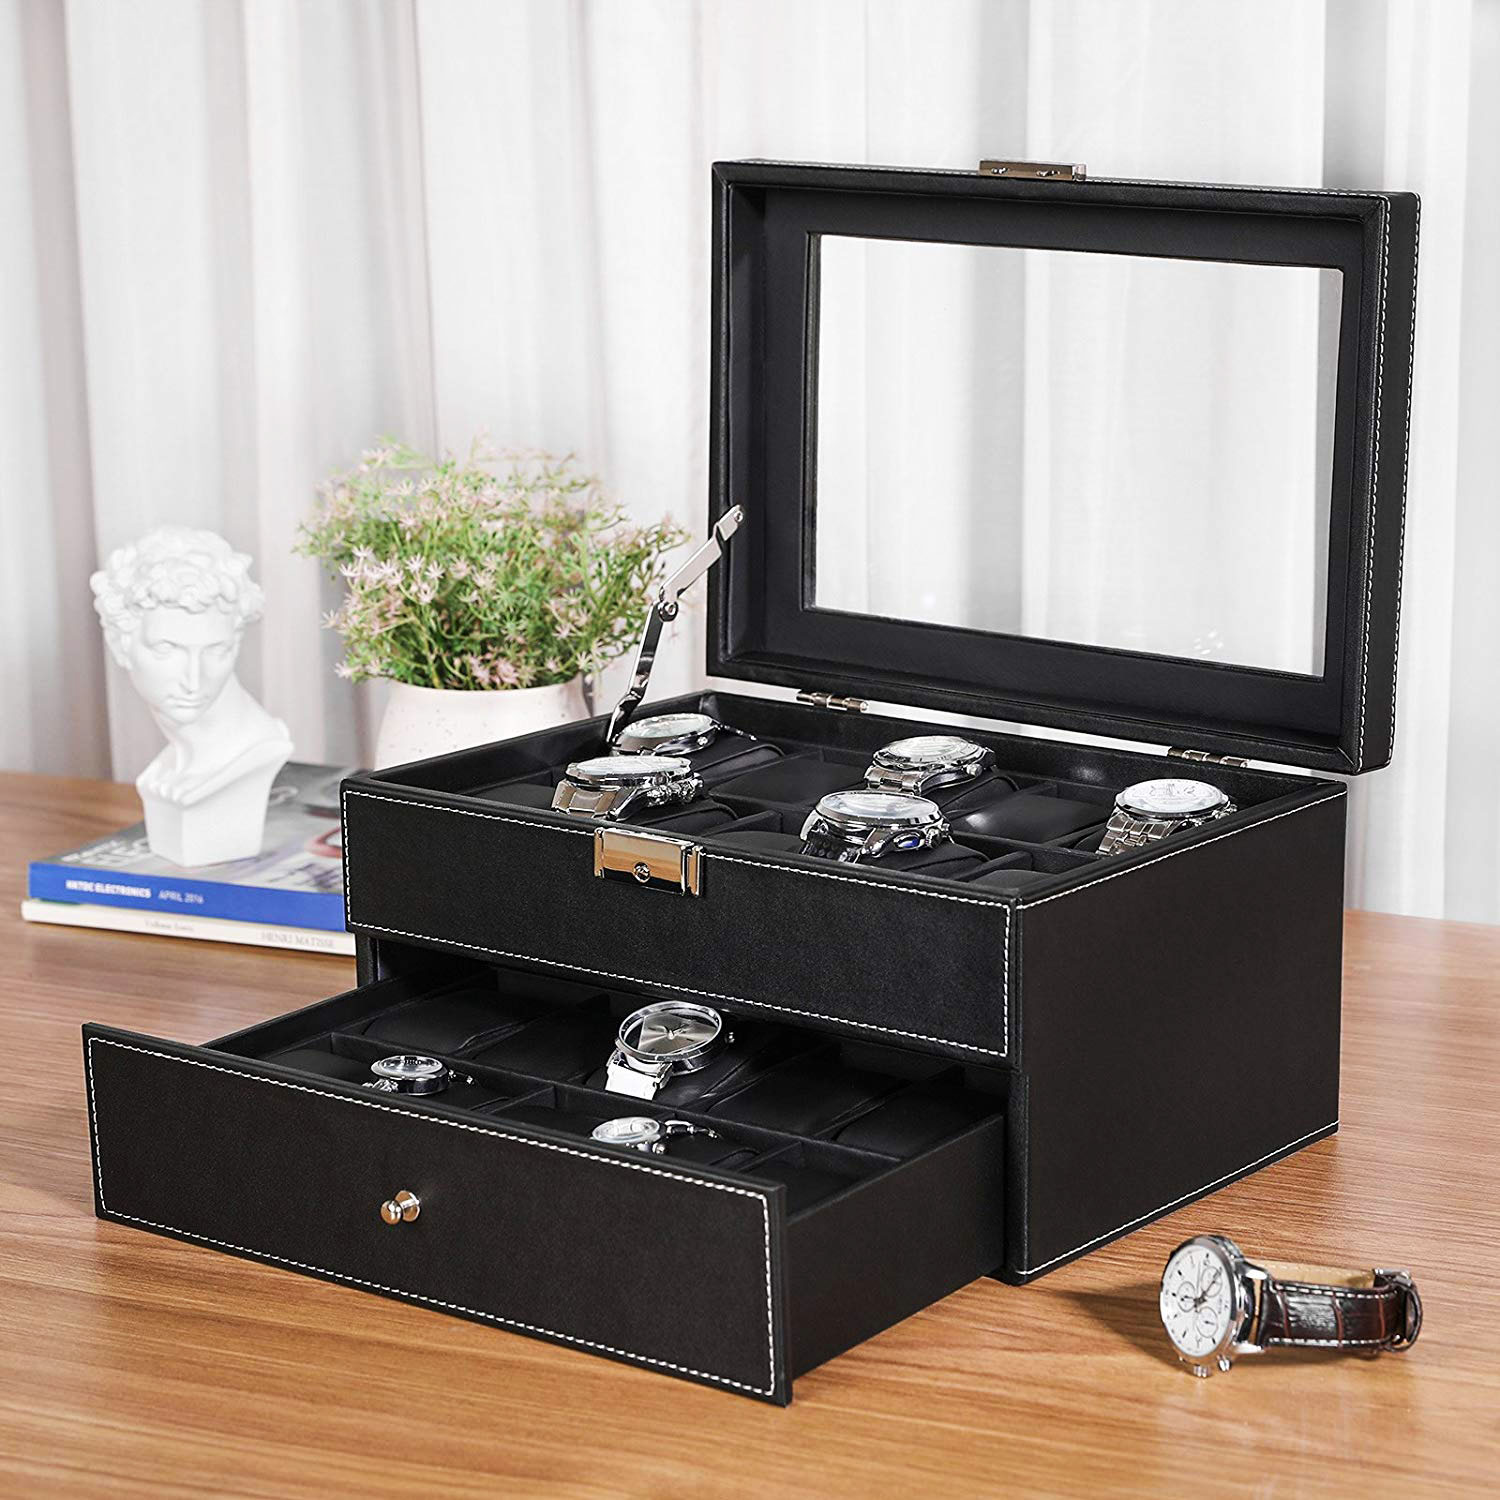 Cases & Displays Reliable Faux Leather Watch Case Storage Display Box Organiser Jewelery Glass Top